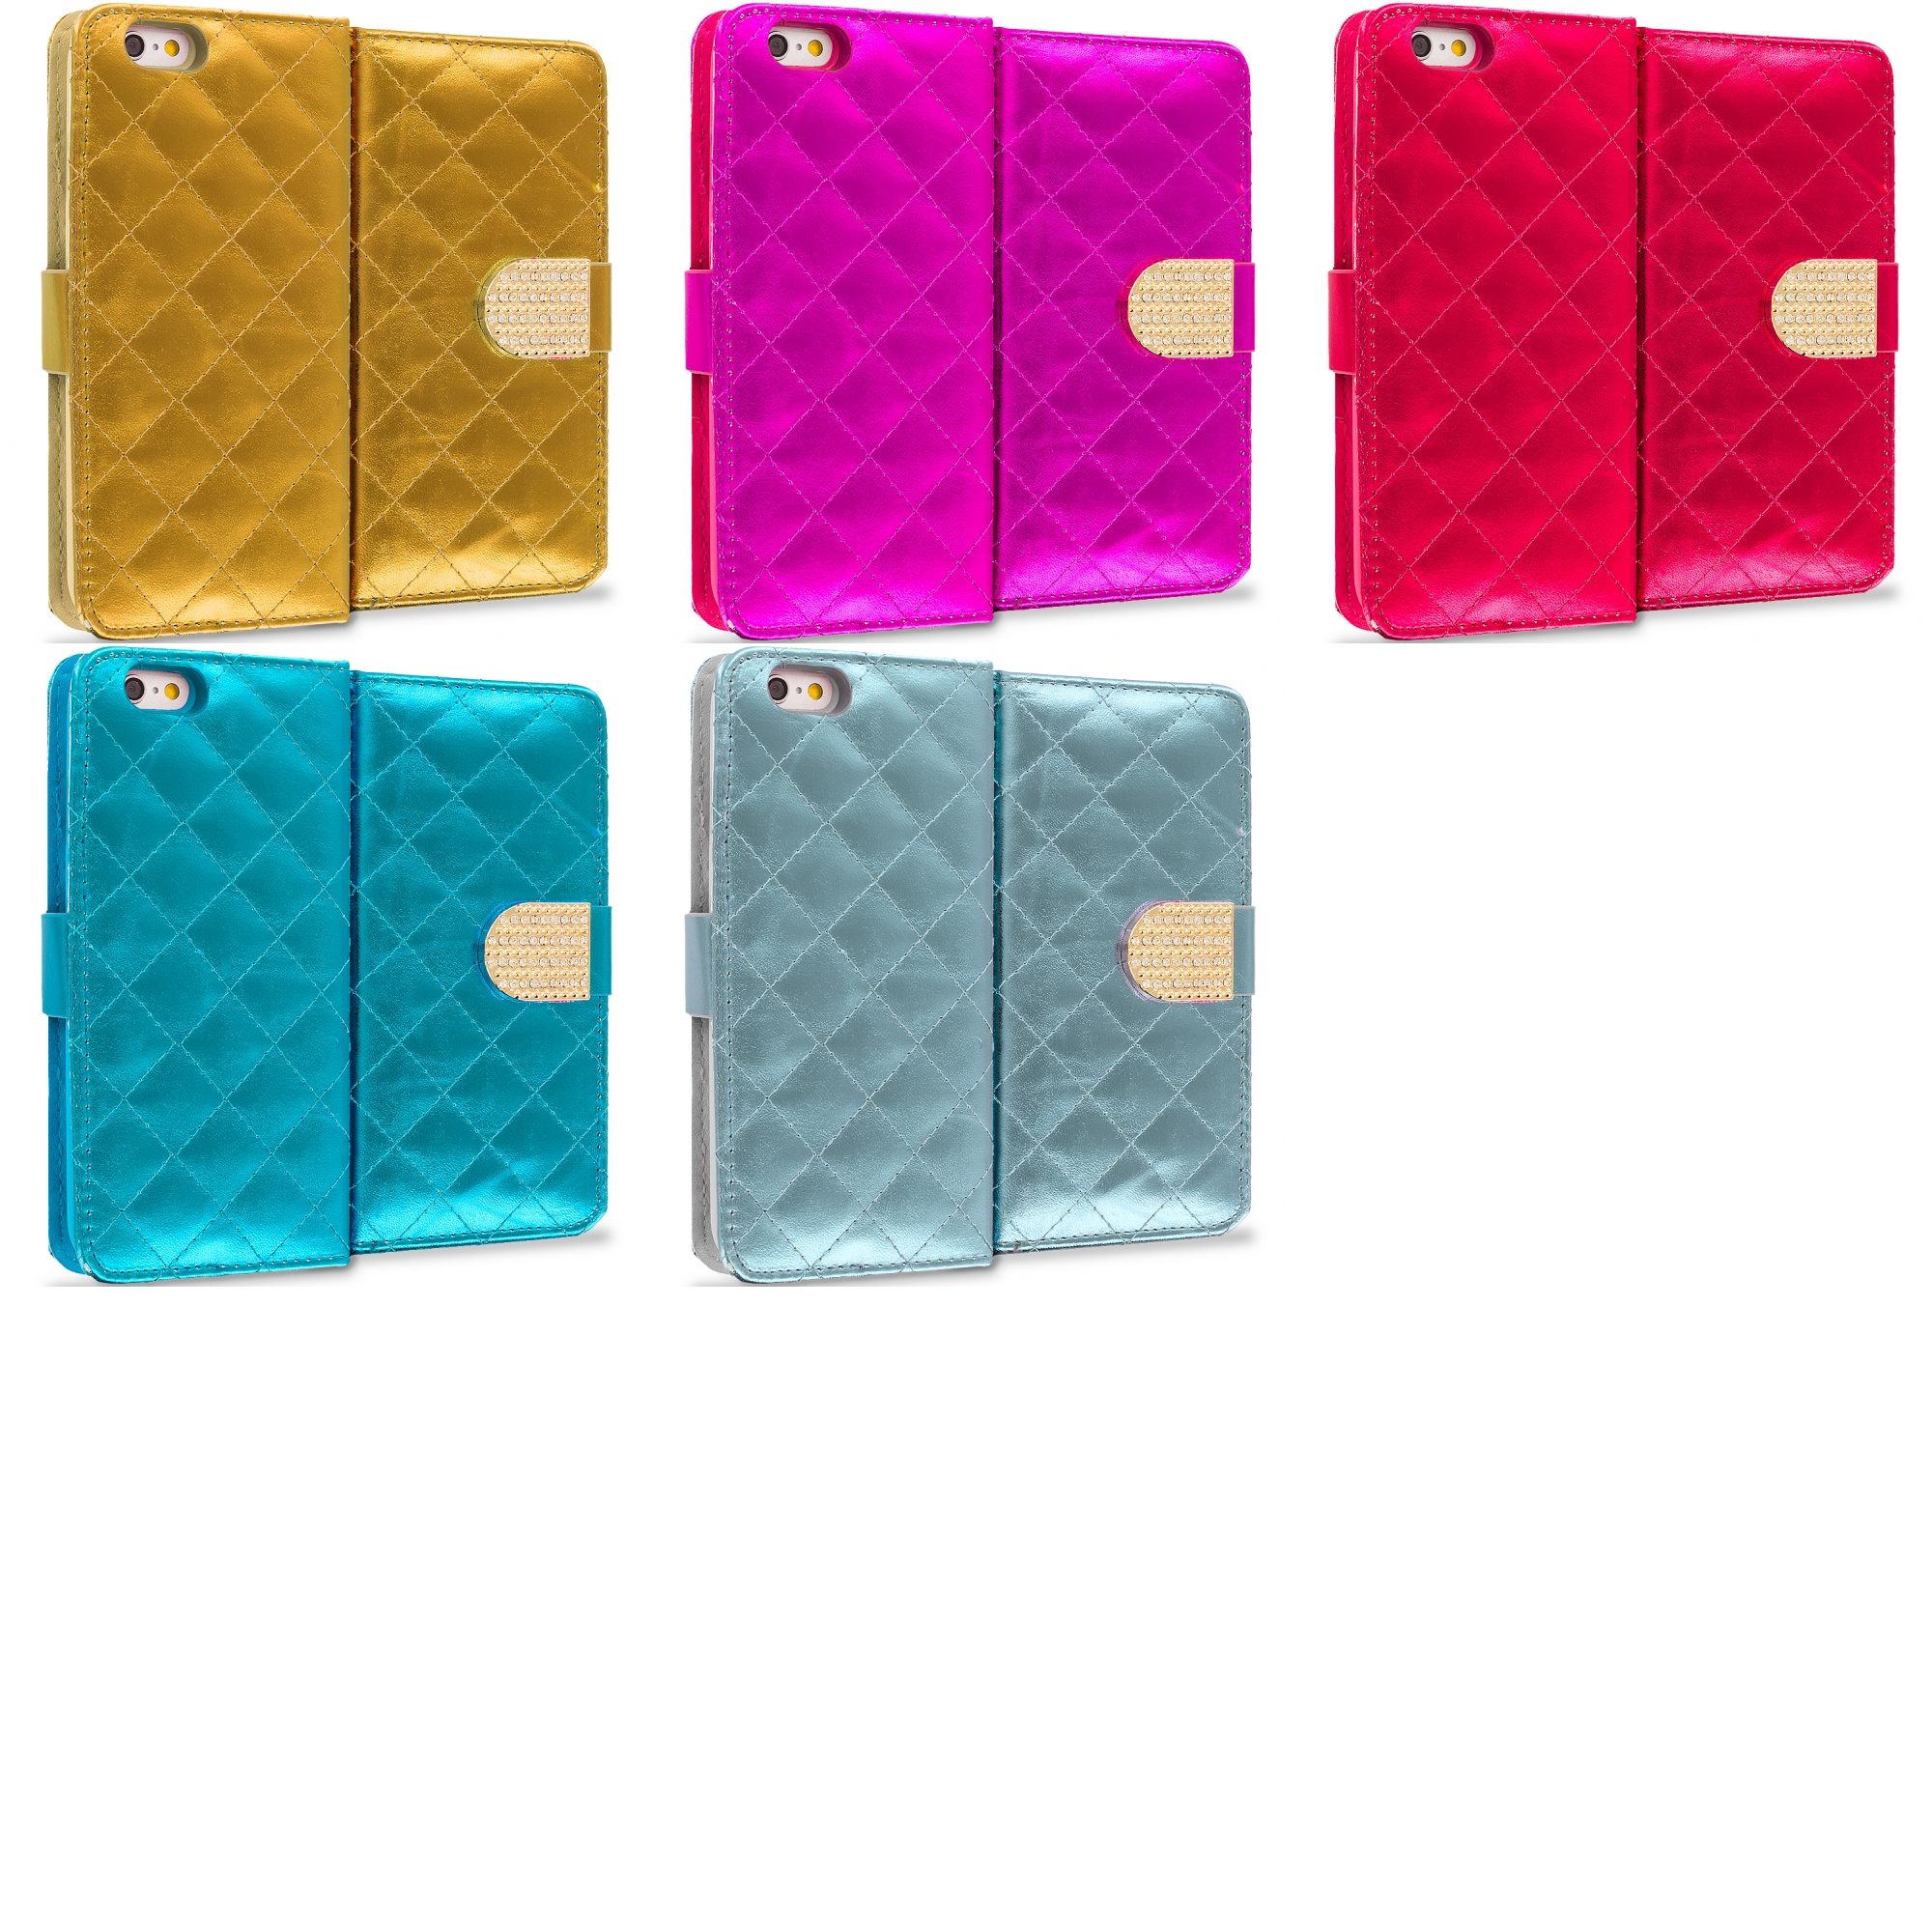 Apple iPhone 6 Plus 6S Plus (5.5) 5 in 1 Combo Bundle Pack - Luxury Wallet Diamond Design Case Cover With Slots